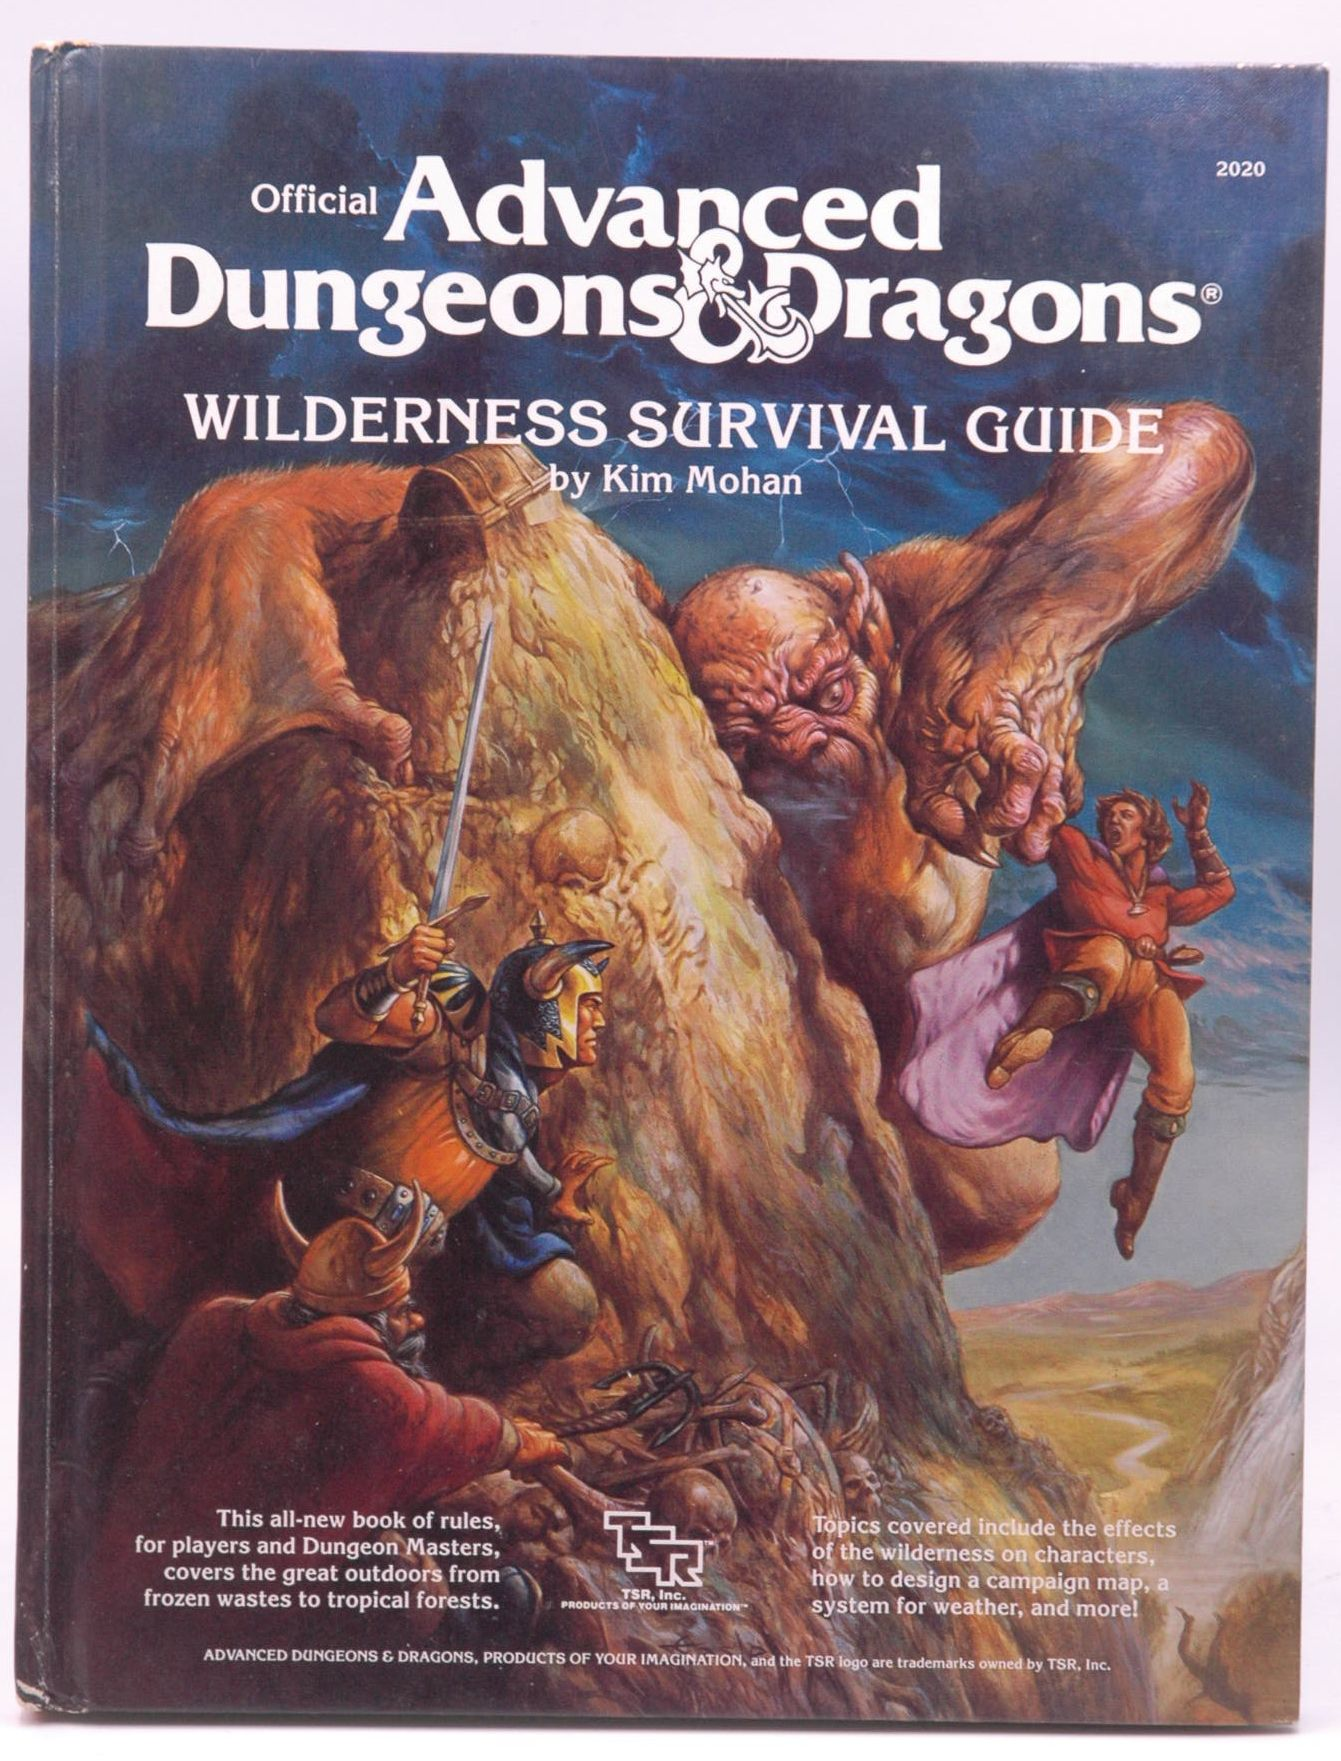 Official Advanced Dungeons and Dragons: Wilderness Survival Guide Kim Mohan AD&D